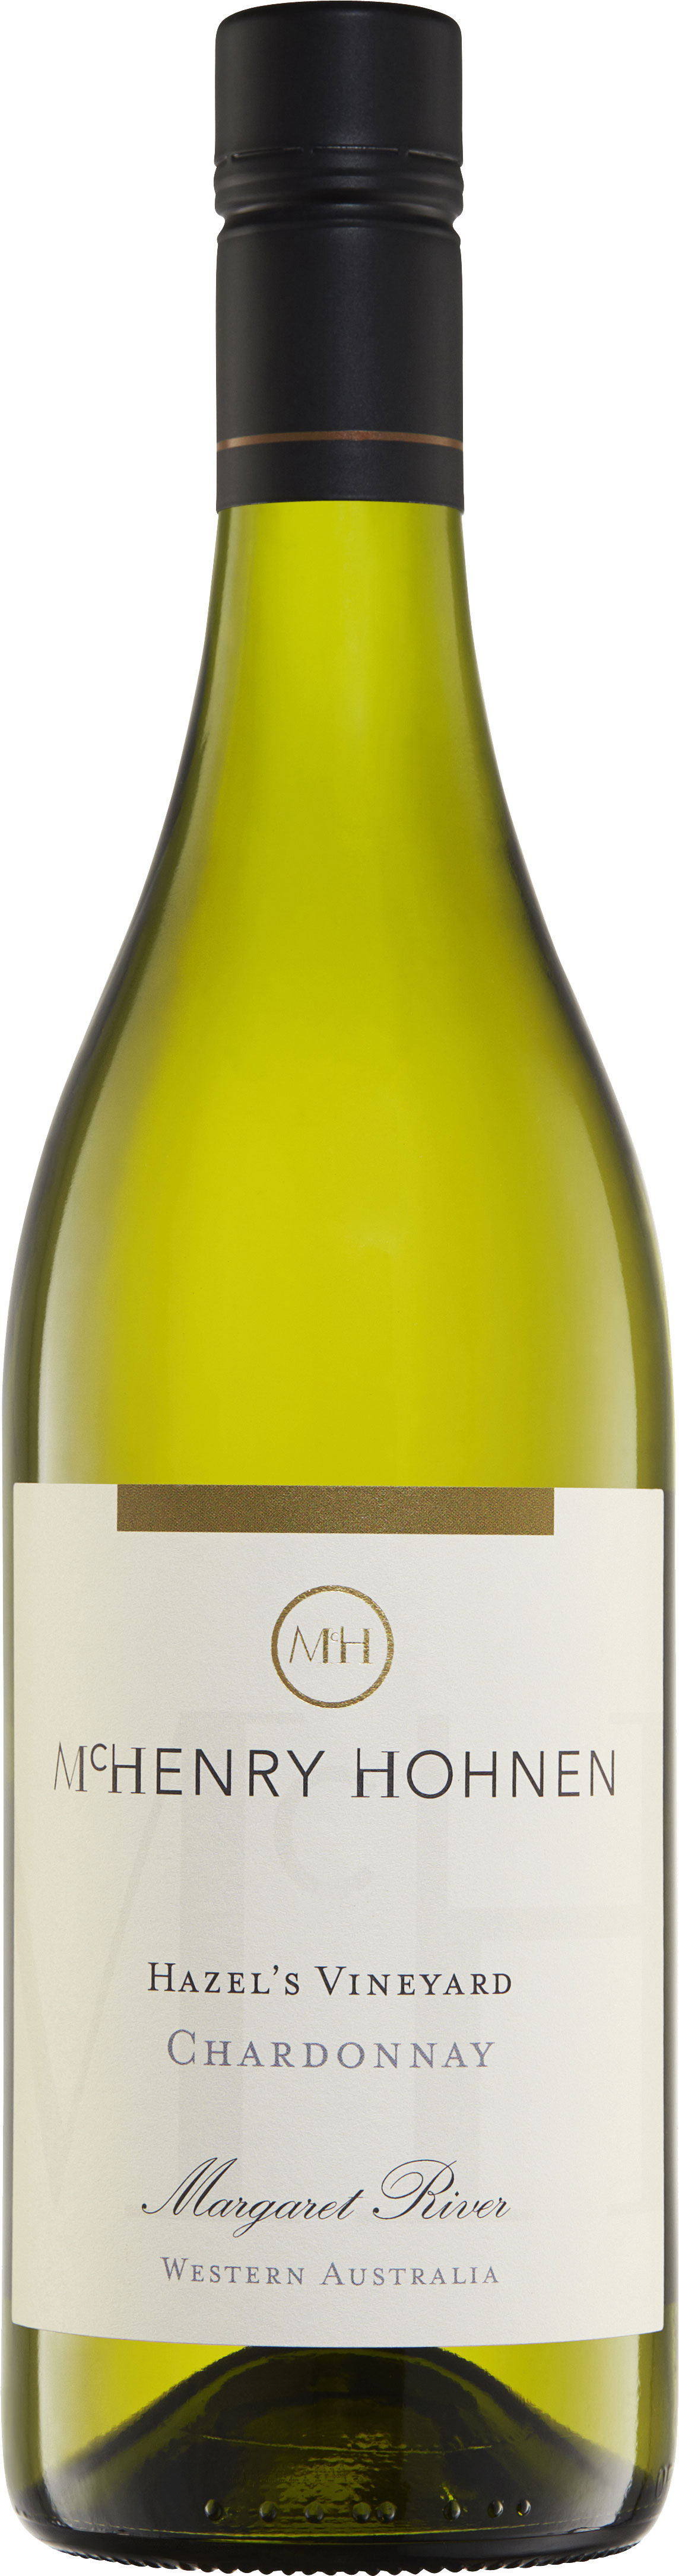 McHenry Hohnen - Burnside Vineyard Chardonnay 2016 6x 75cl Bottles